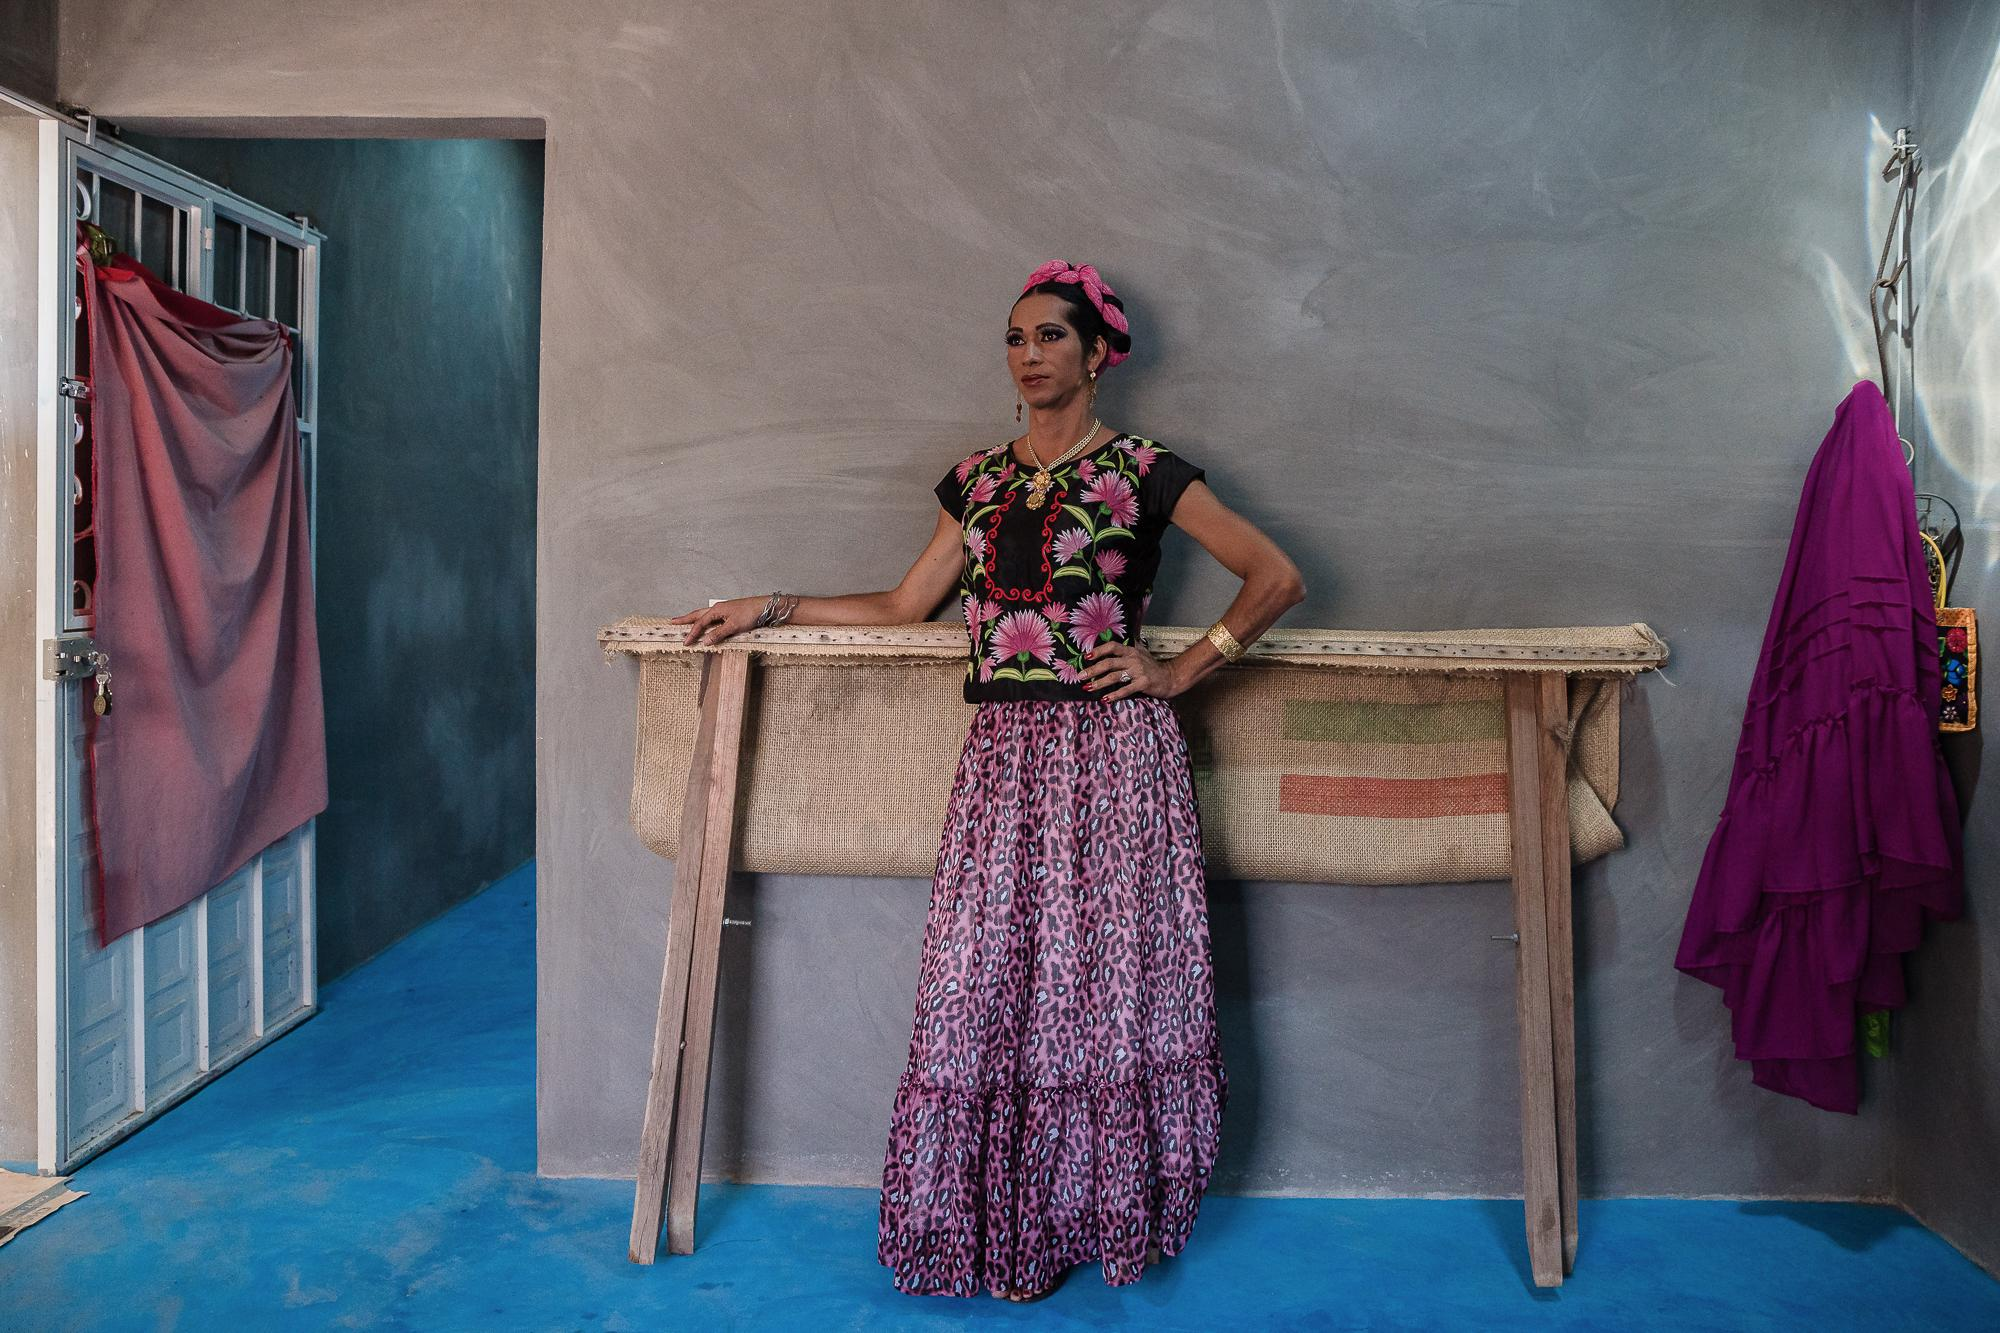 Estrella poses for a photo wearing a traditional huipil garment with colorful flowers.